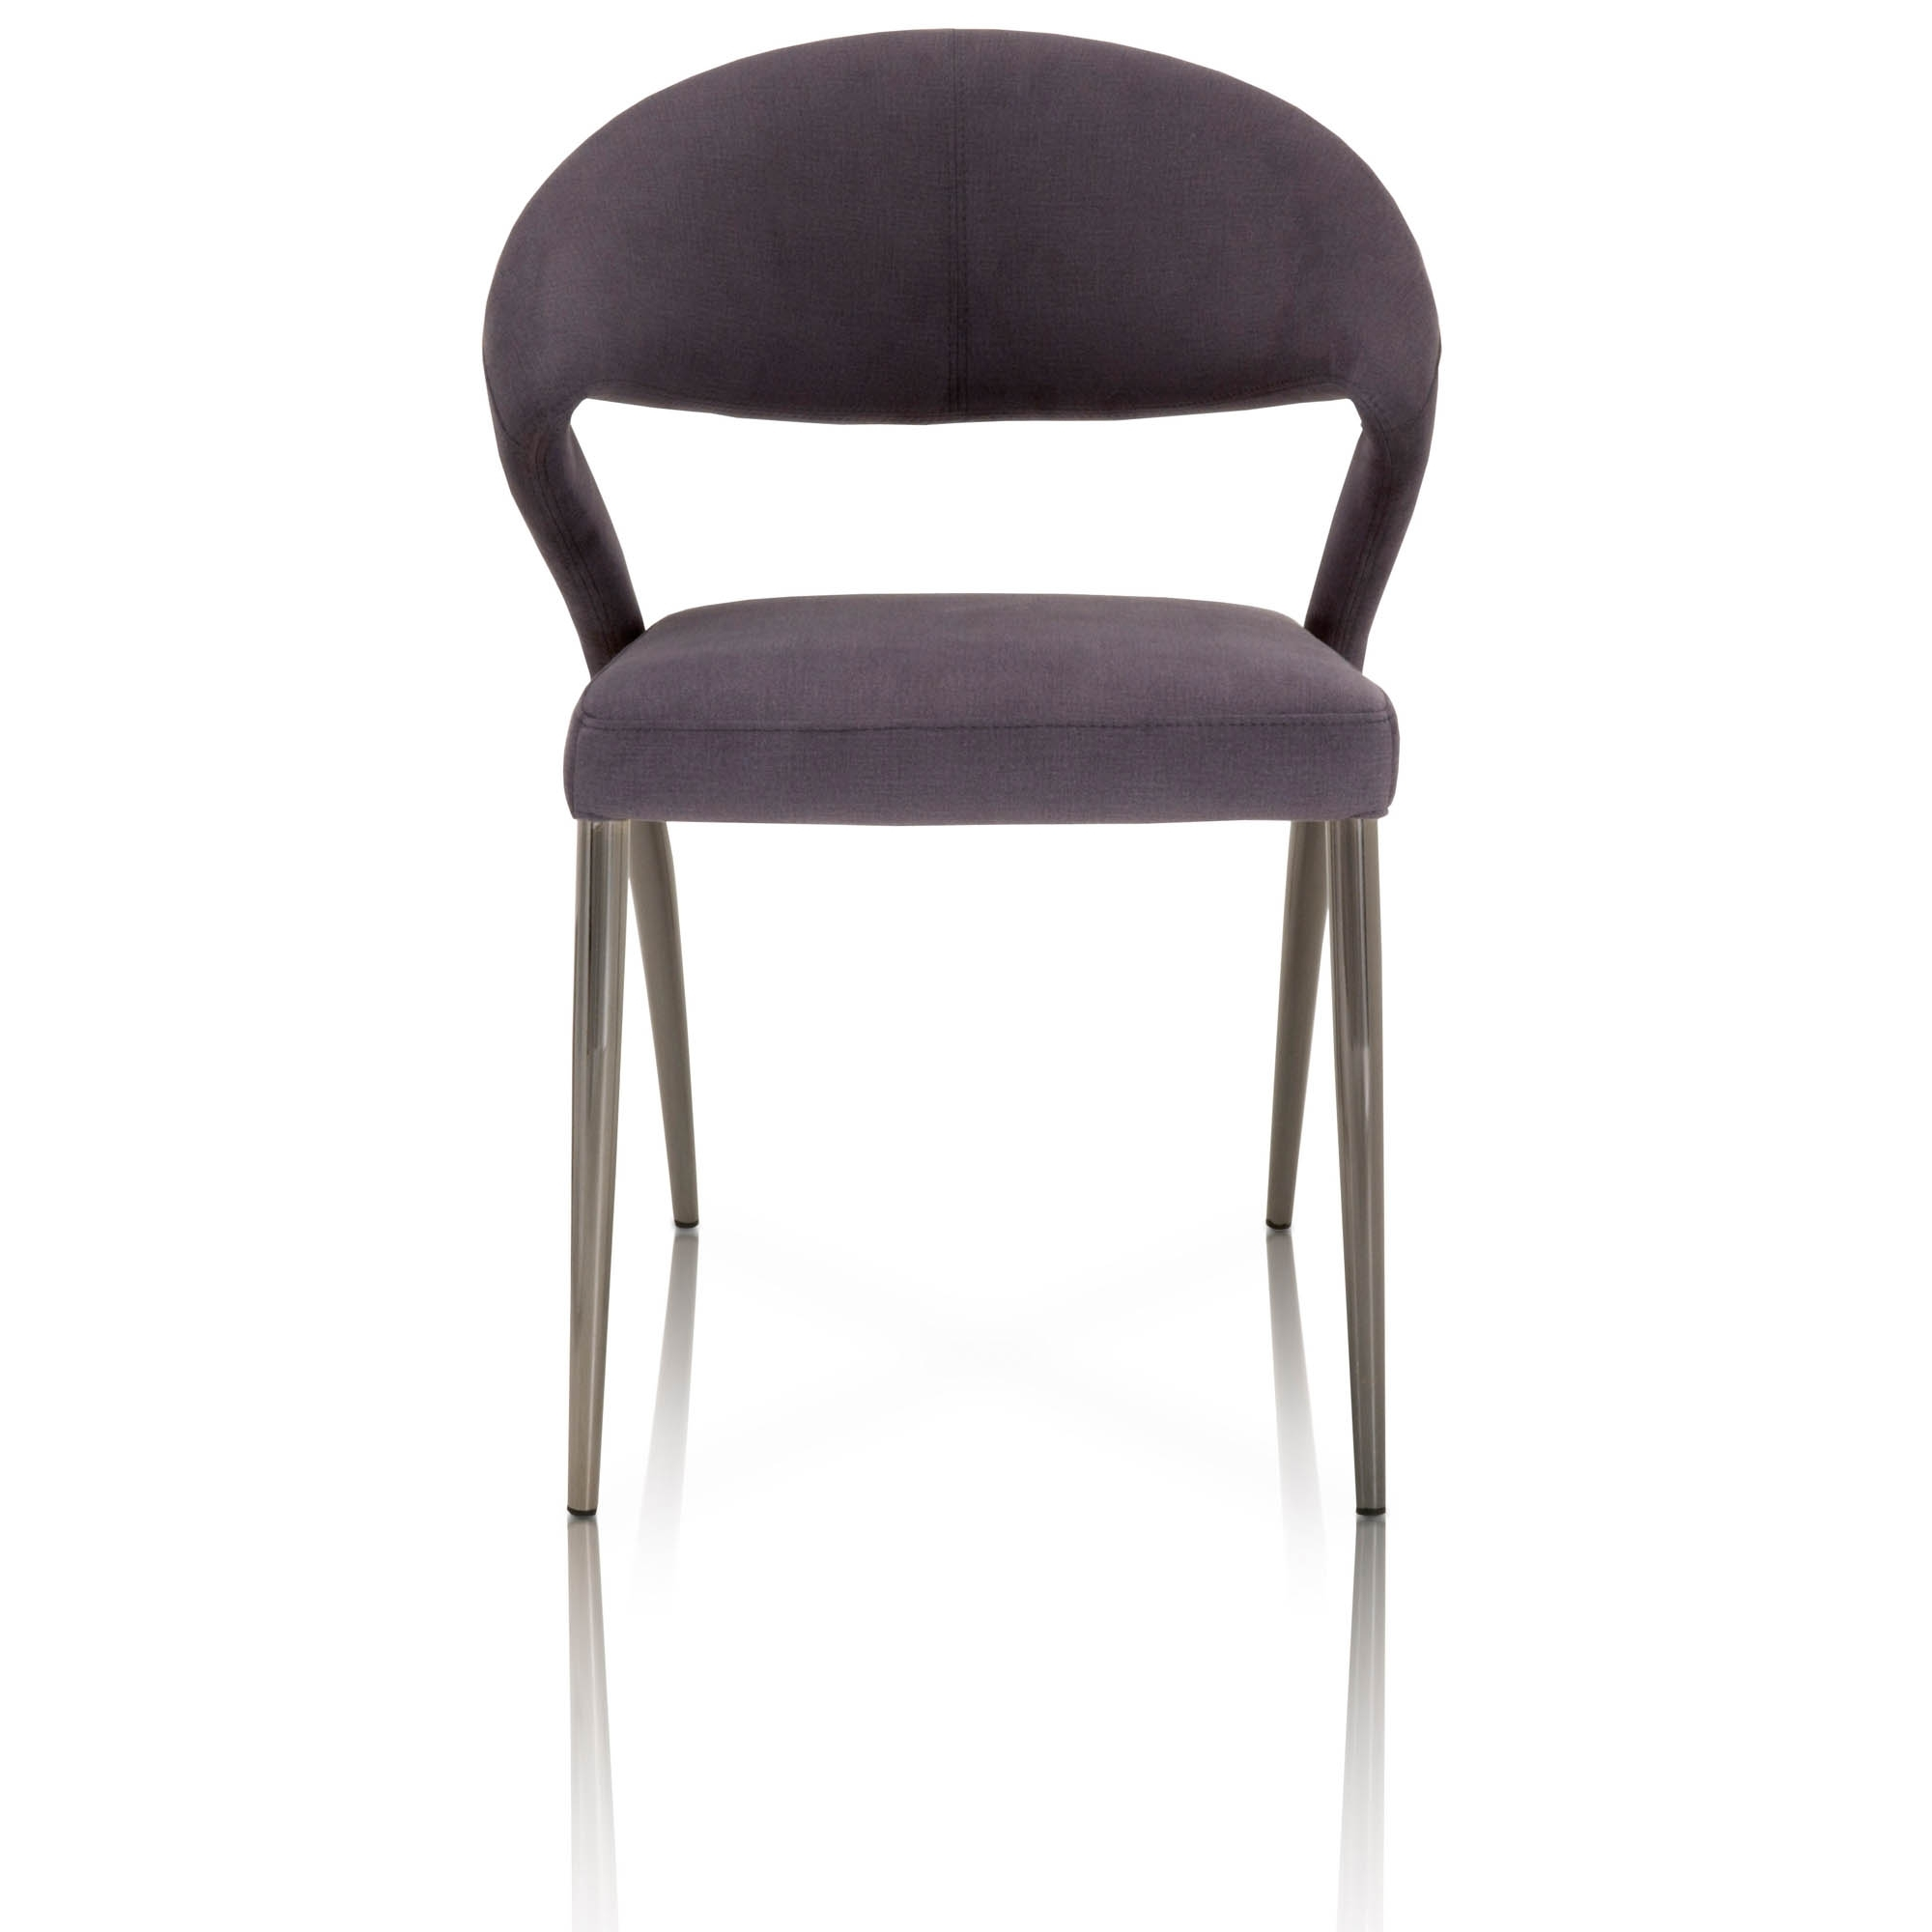 Alexa White Side Chairs Regarding Favorite Dining Chairs (View 3 of 20)